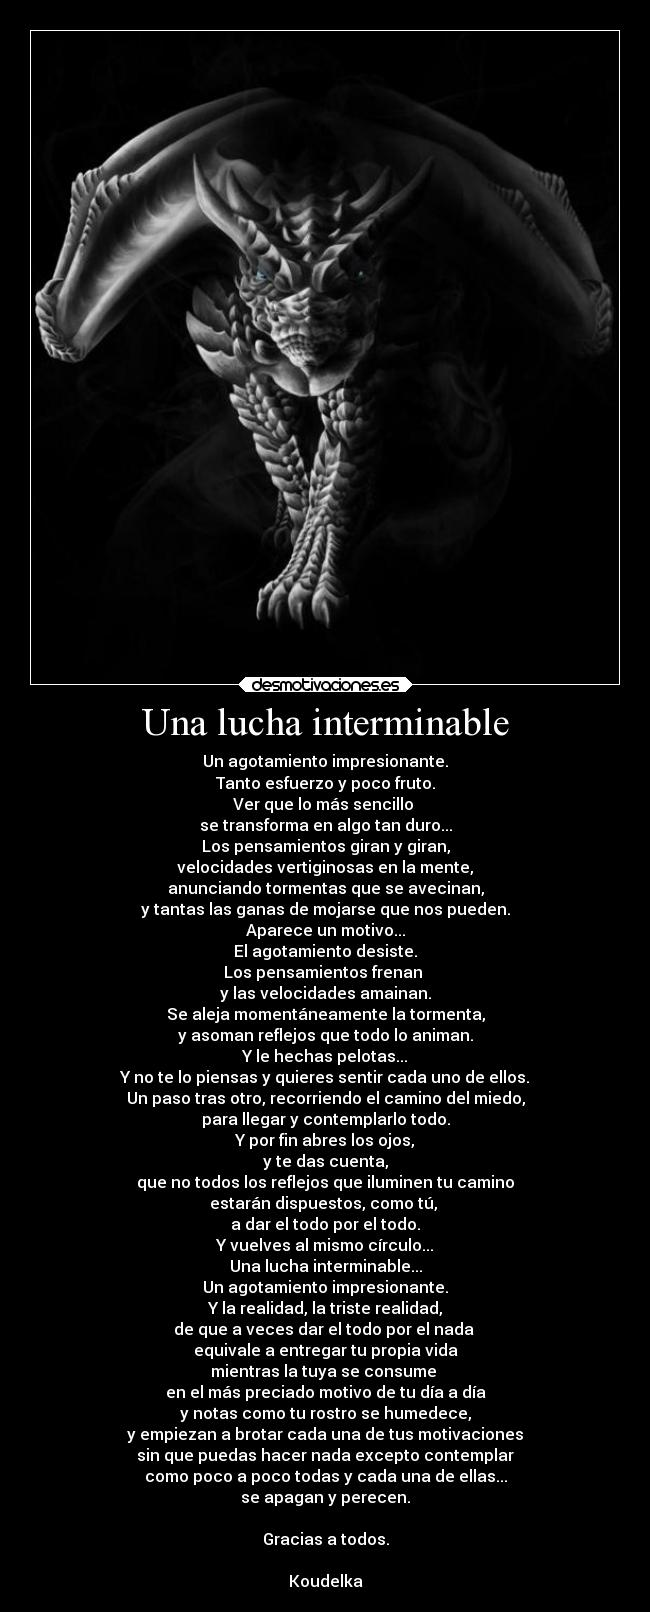 Una lucha interminable -